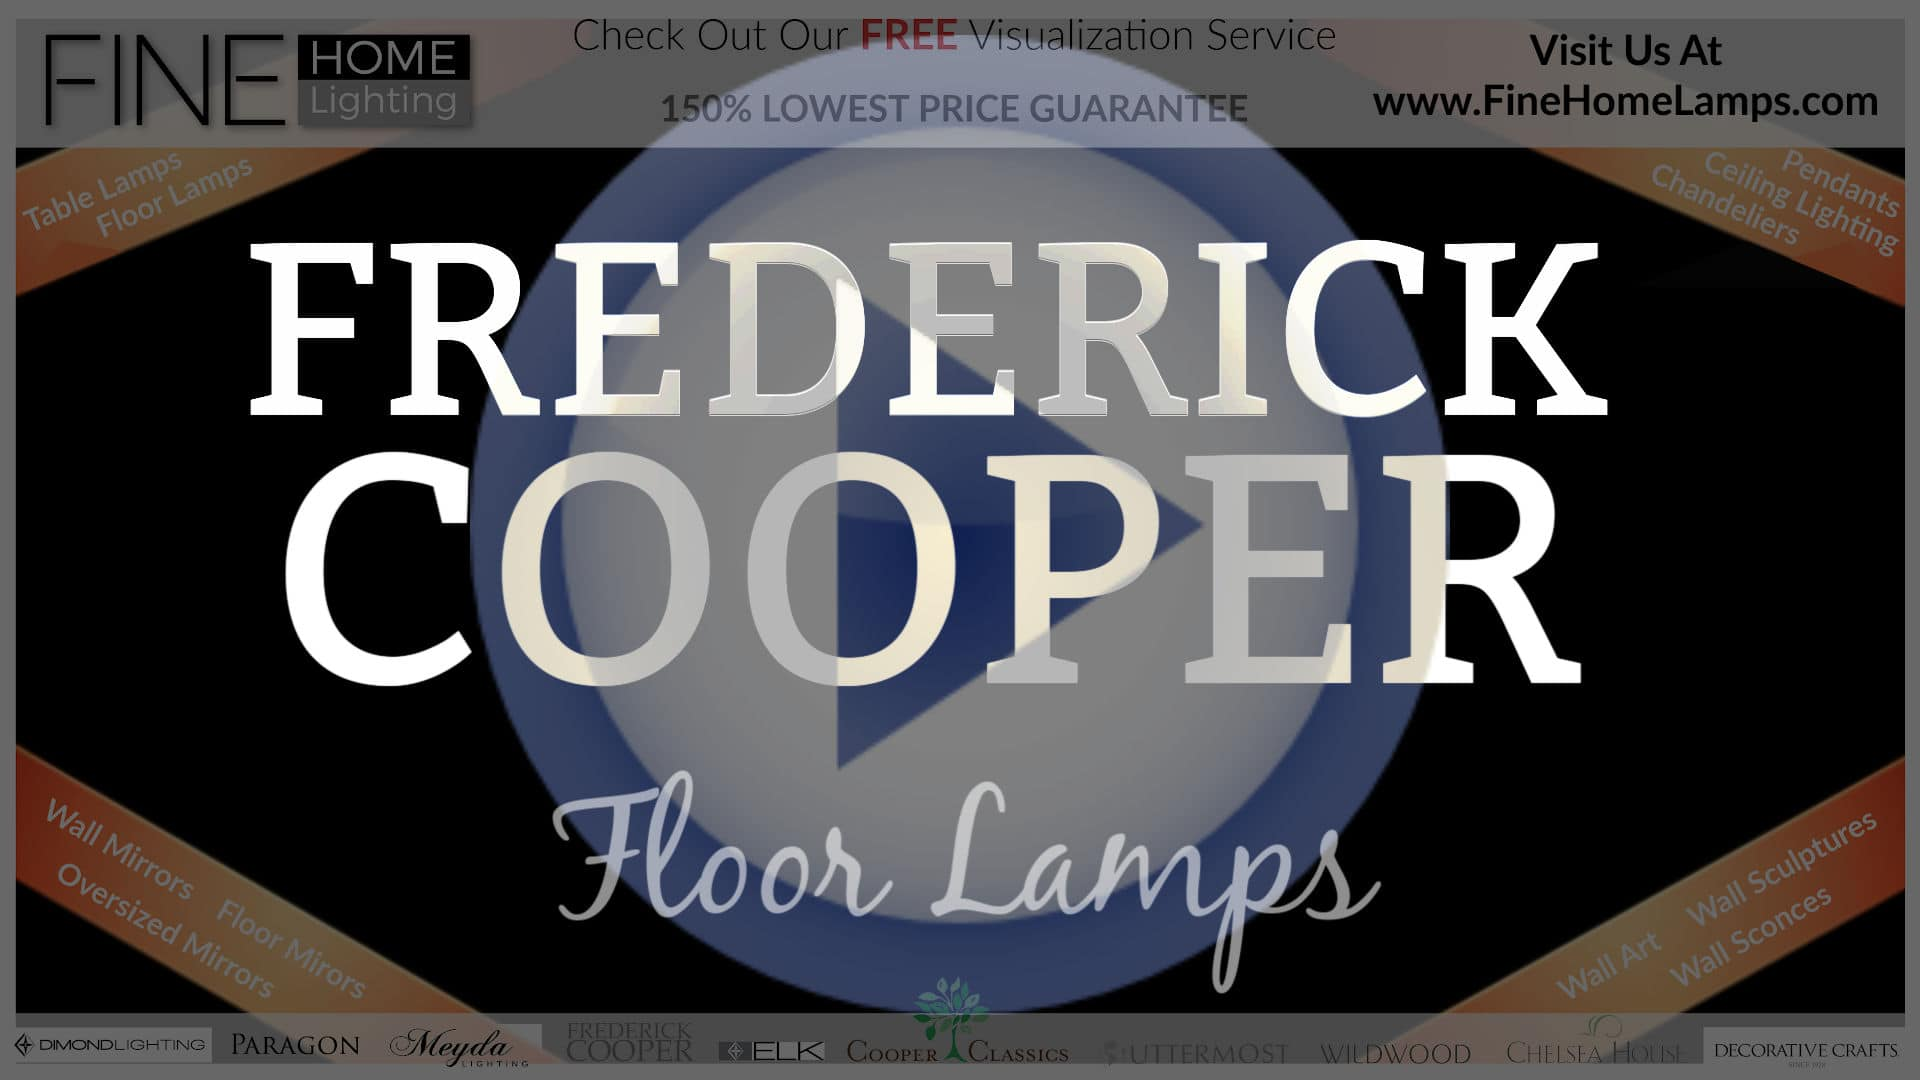 FREDERICK-COOPER-FLOOR-LAMPS-Thanks-for-watching-this-video-Get-an-additional-15-percent-off-your-next-purchase-Use-Coupon-Code-VIDEO